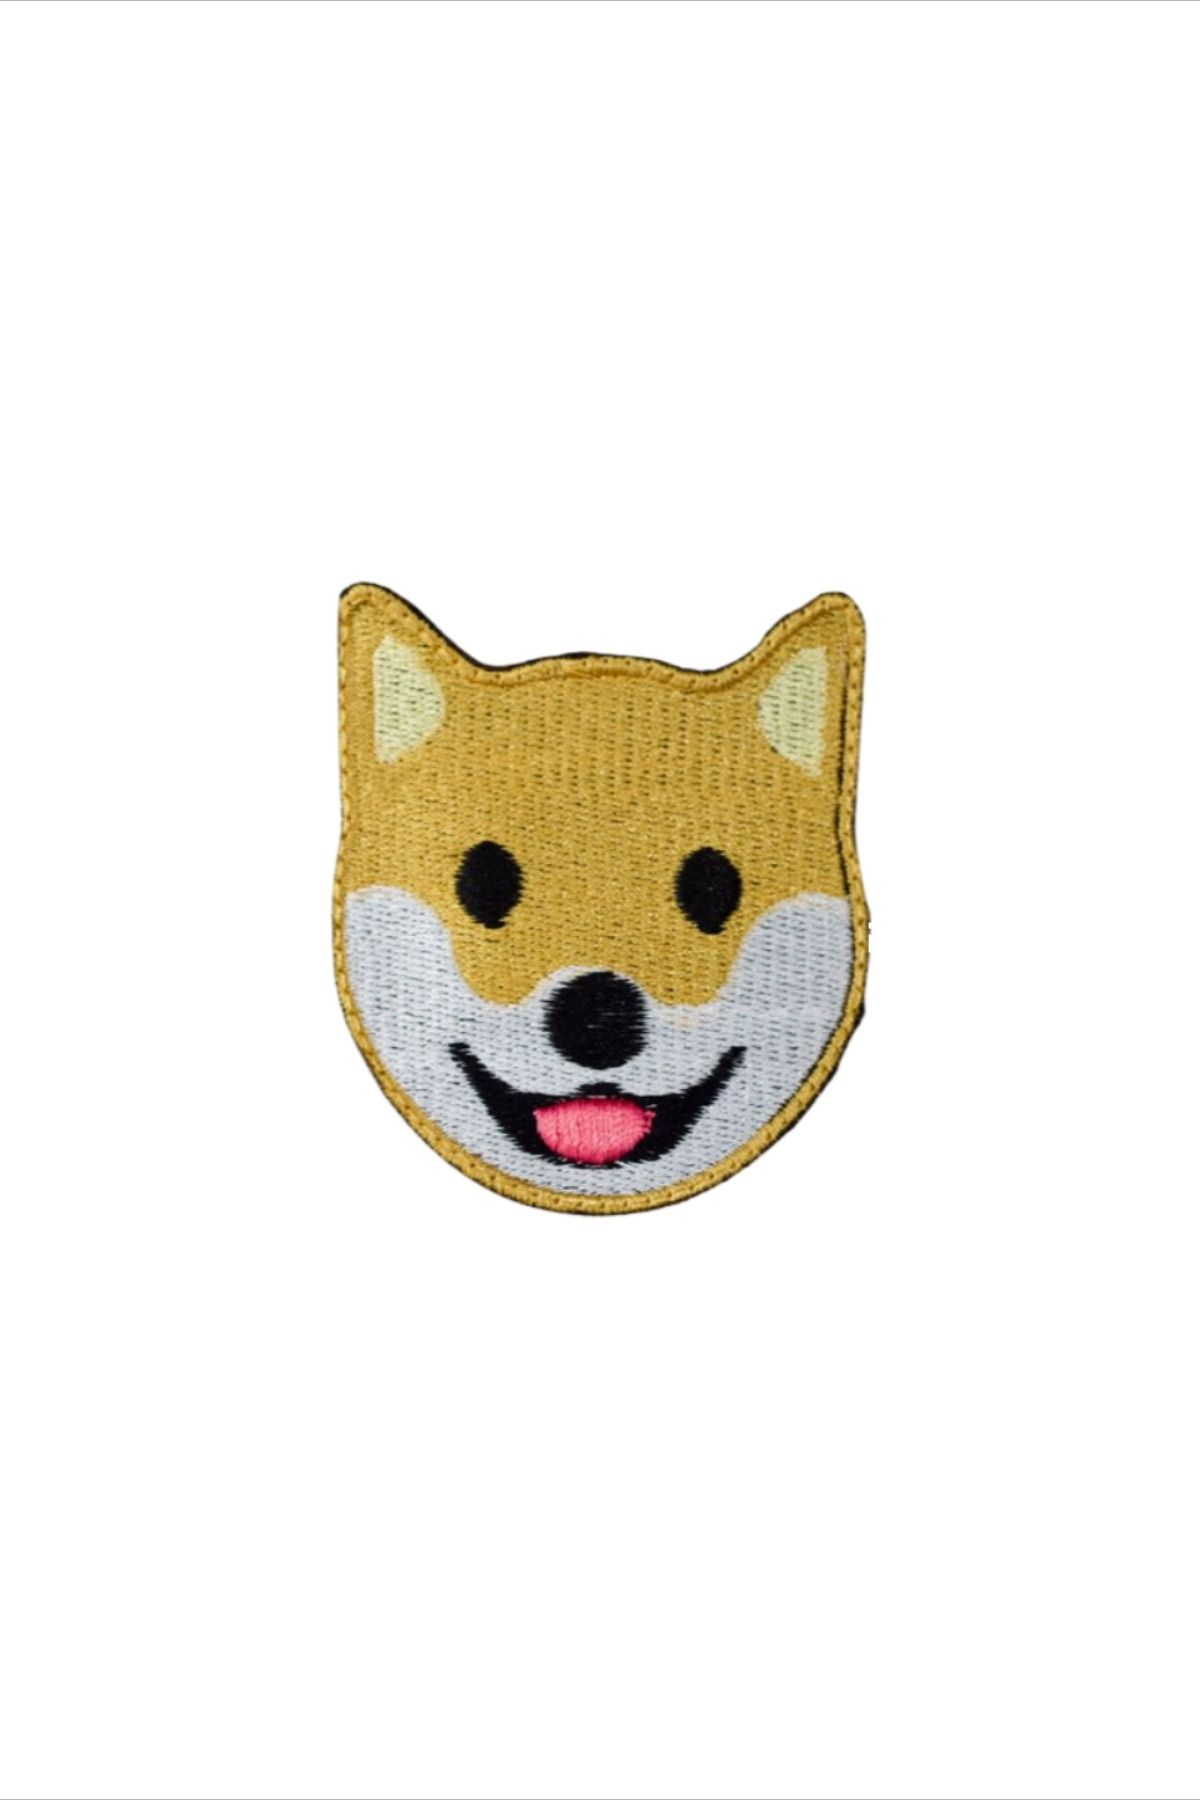 Dog Face Emoji Patches For Jackets Jeans Hats And Pans Made With Ecological And Recycled Threads In 2020 Embroidered Patches Dog Patch Emoji Patch